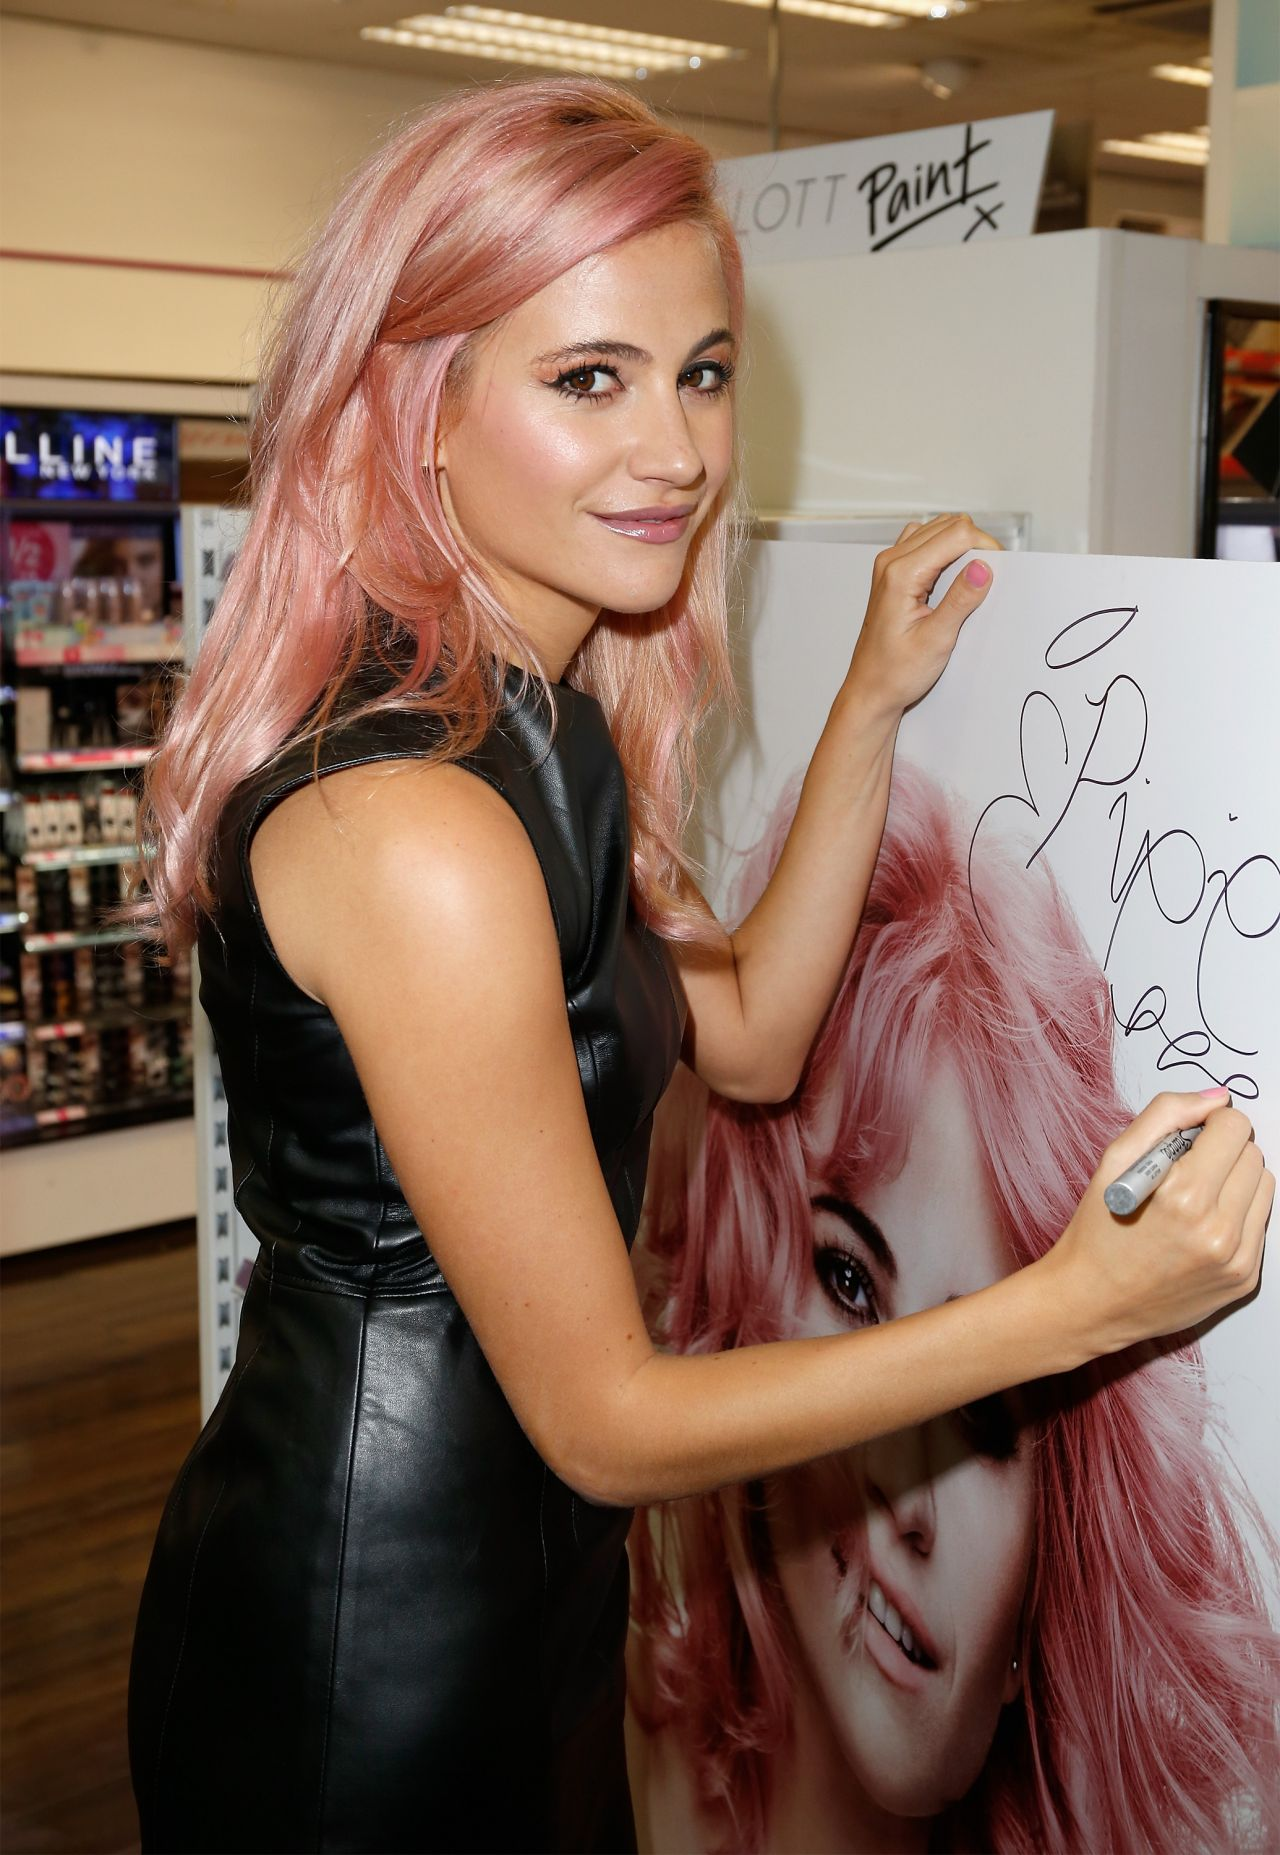 Launch of 'PAINT' by Pixie Lott